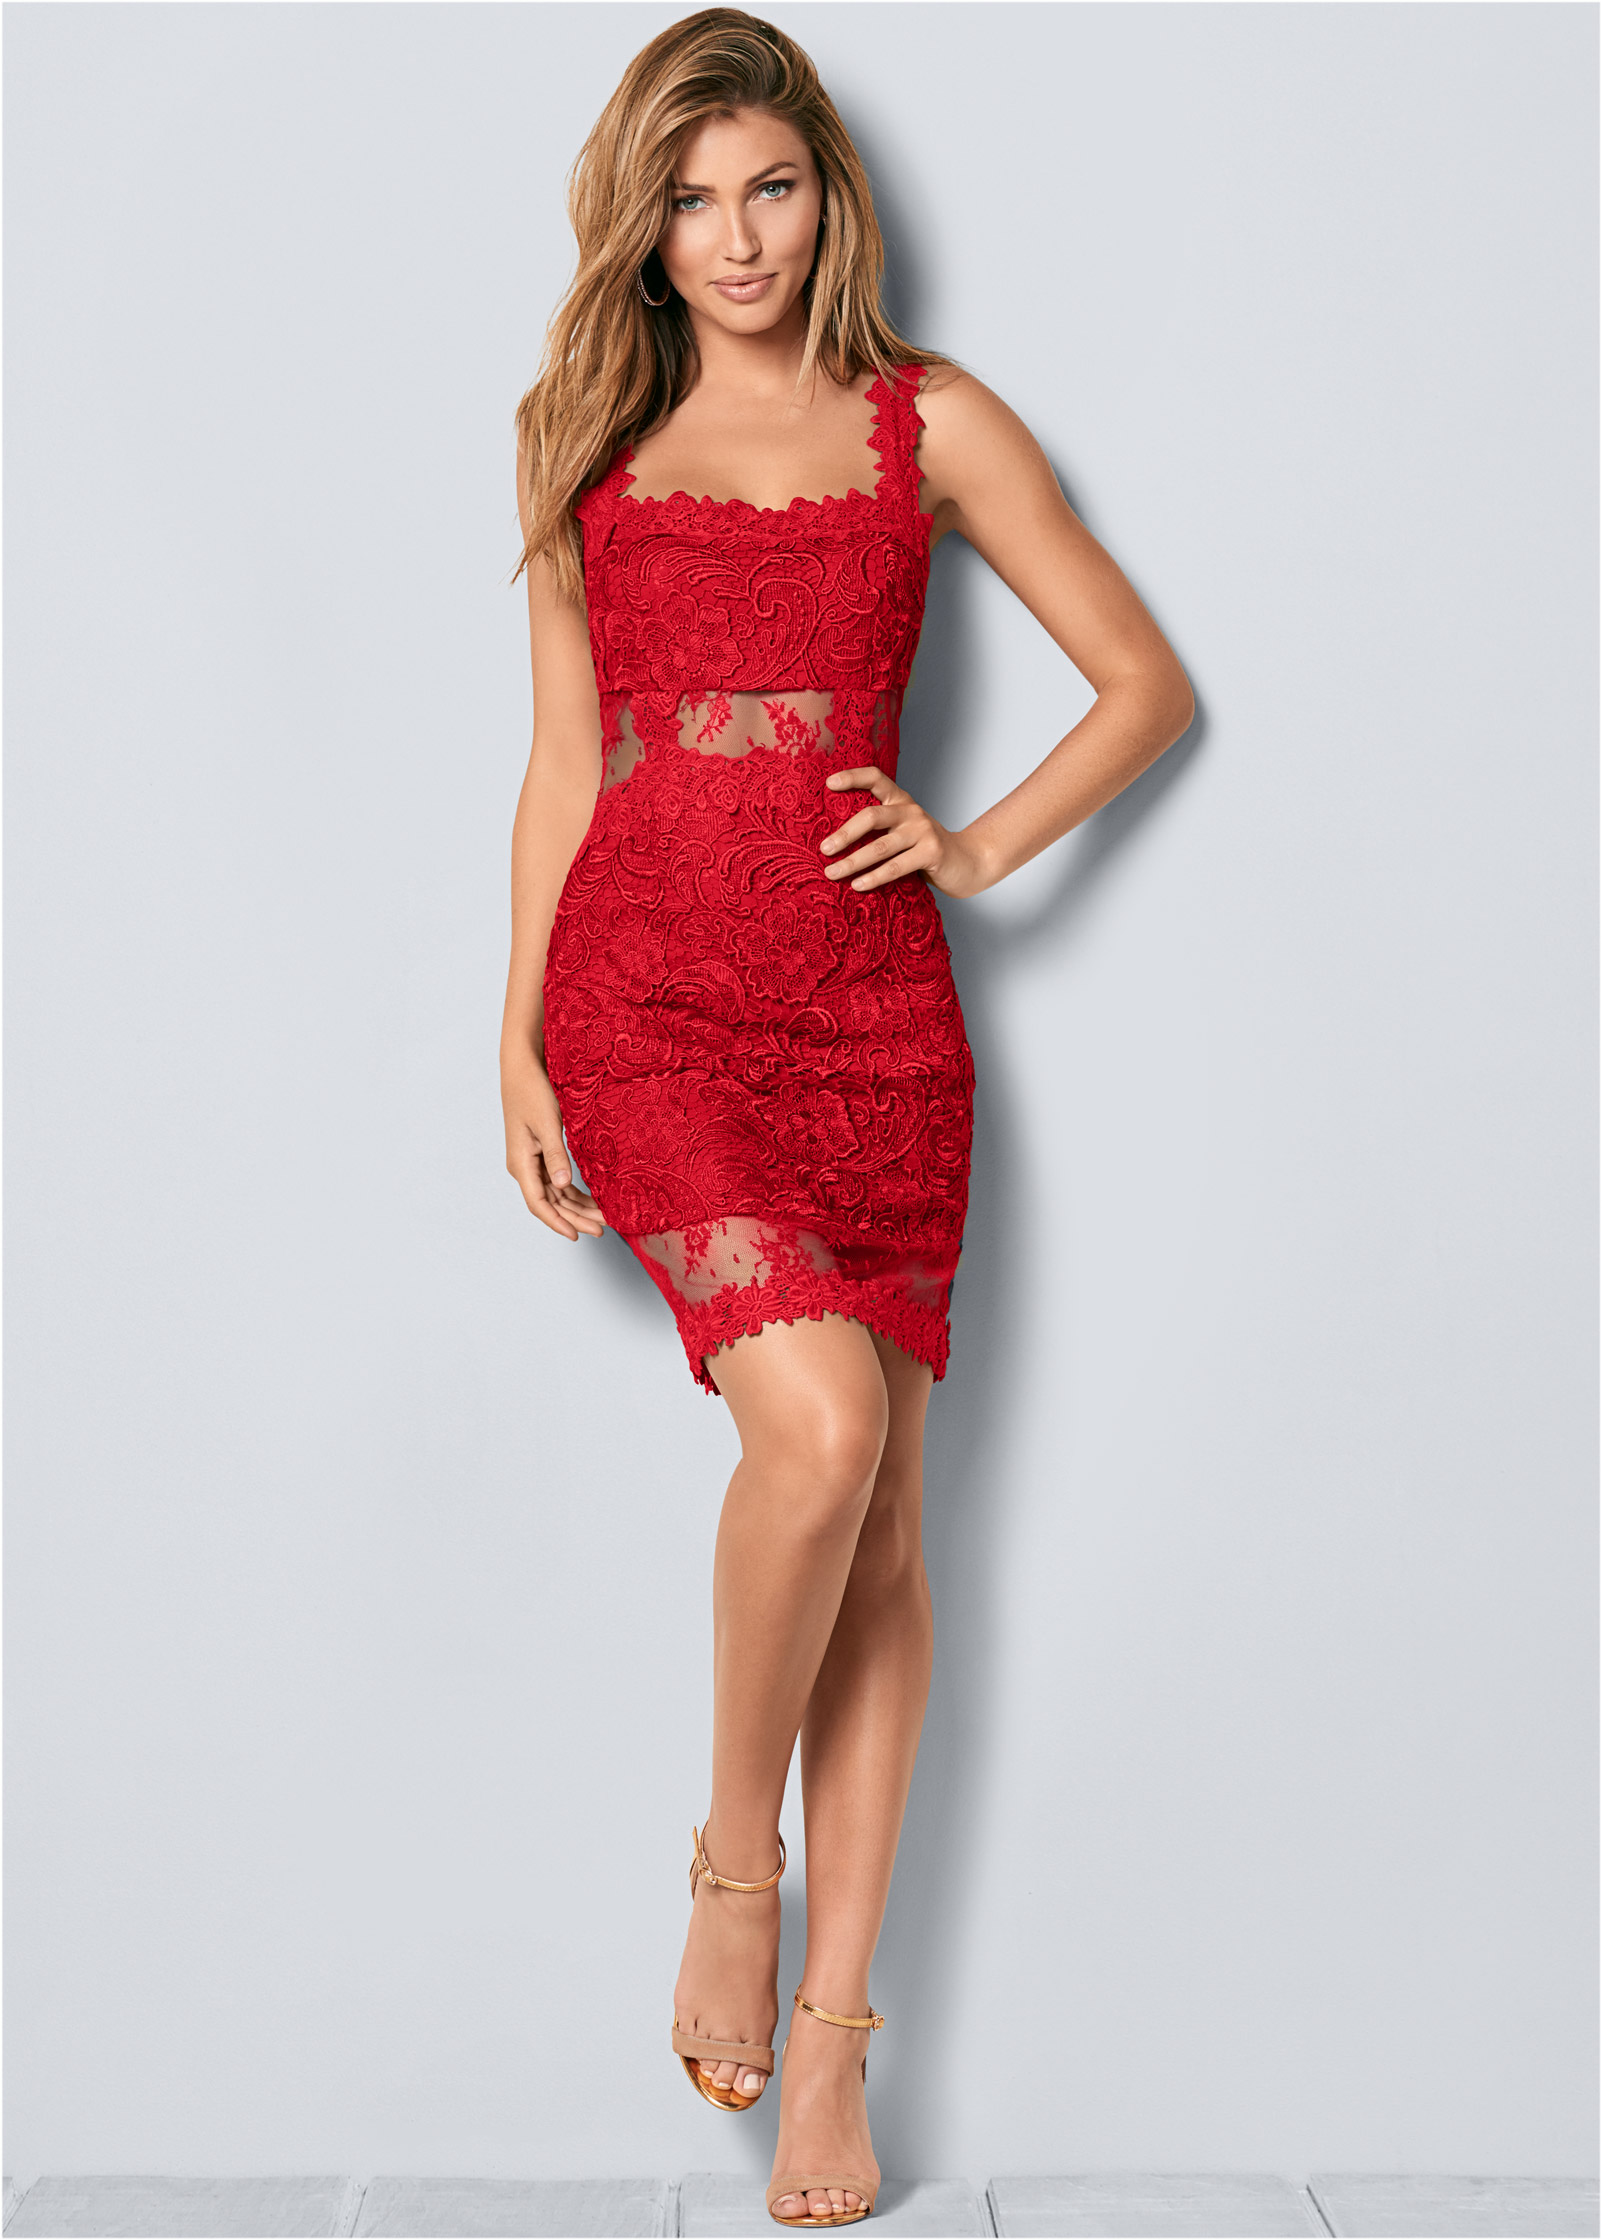 lace red bodycon prom dress,bodycon dress,bodycon dress,red bodycon dress,lace bodycon dress,bodycon dress red dress,bodycon dress,red bodycon dress,bodycon dress dress,bodycon dress,bodycon dress,